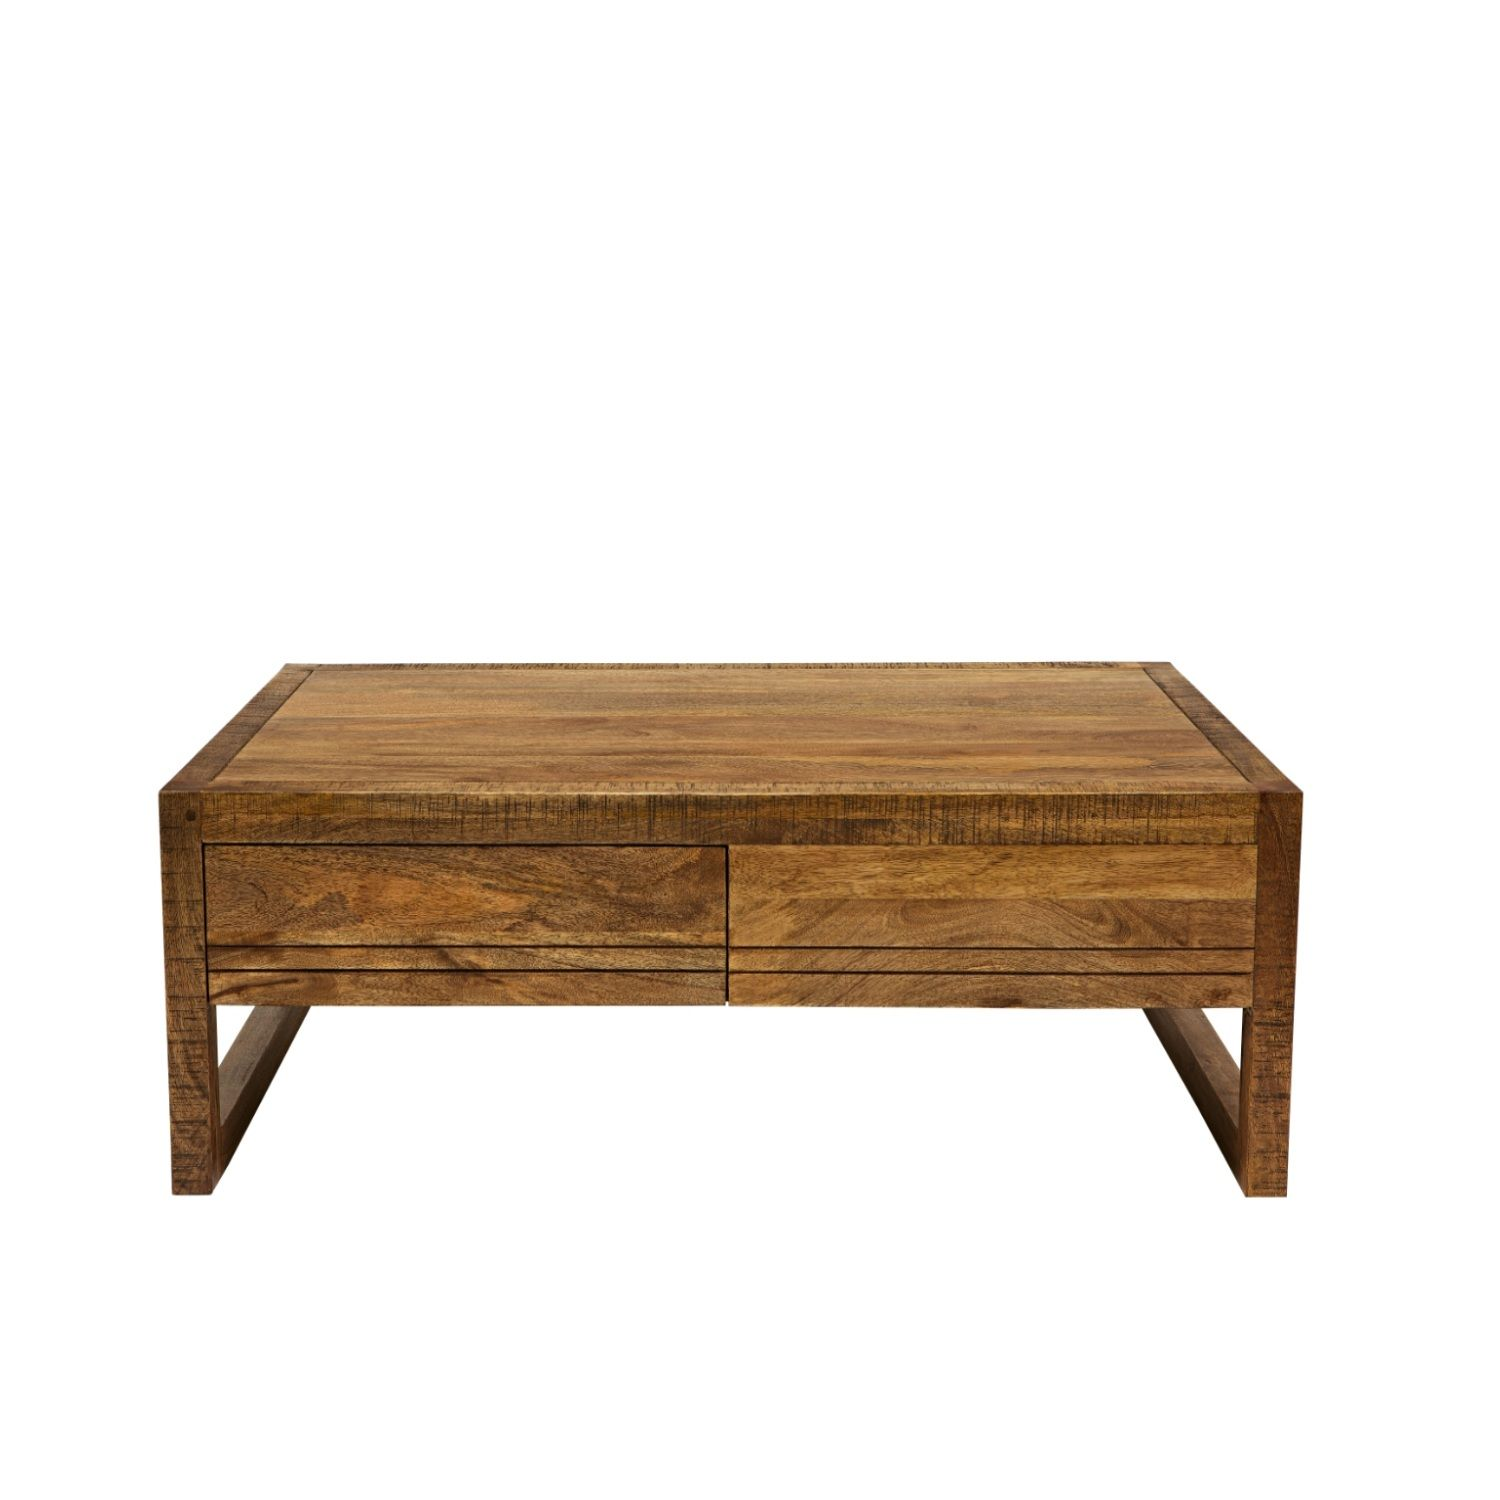 Titan 2 Drawer Coffee Table from Domayne line